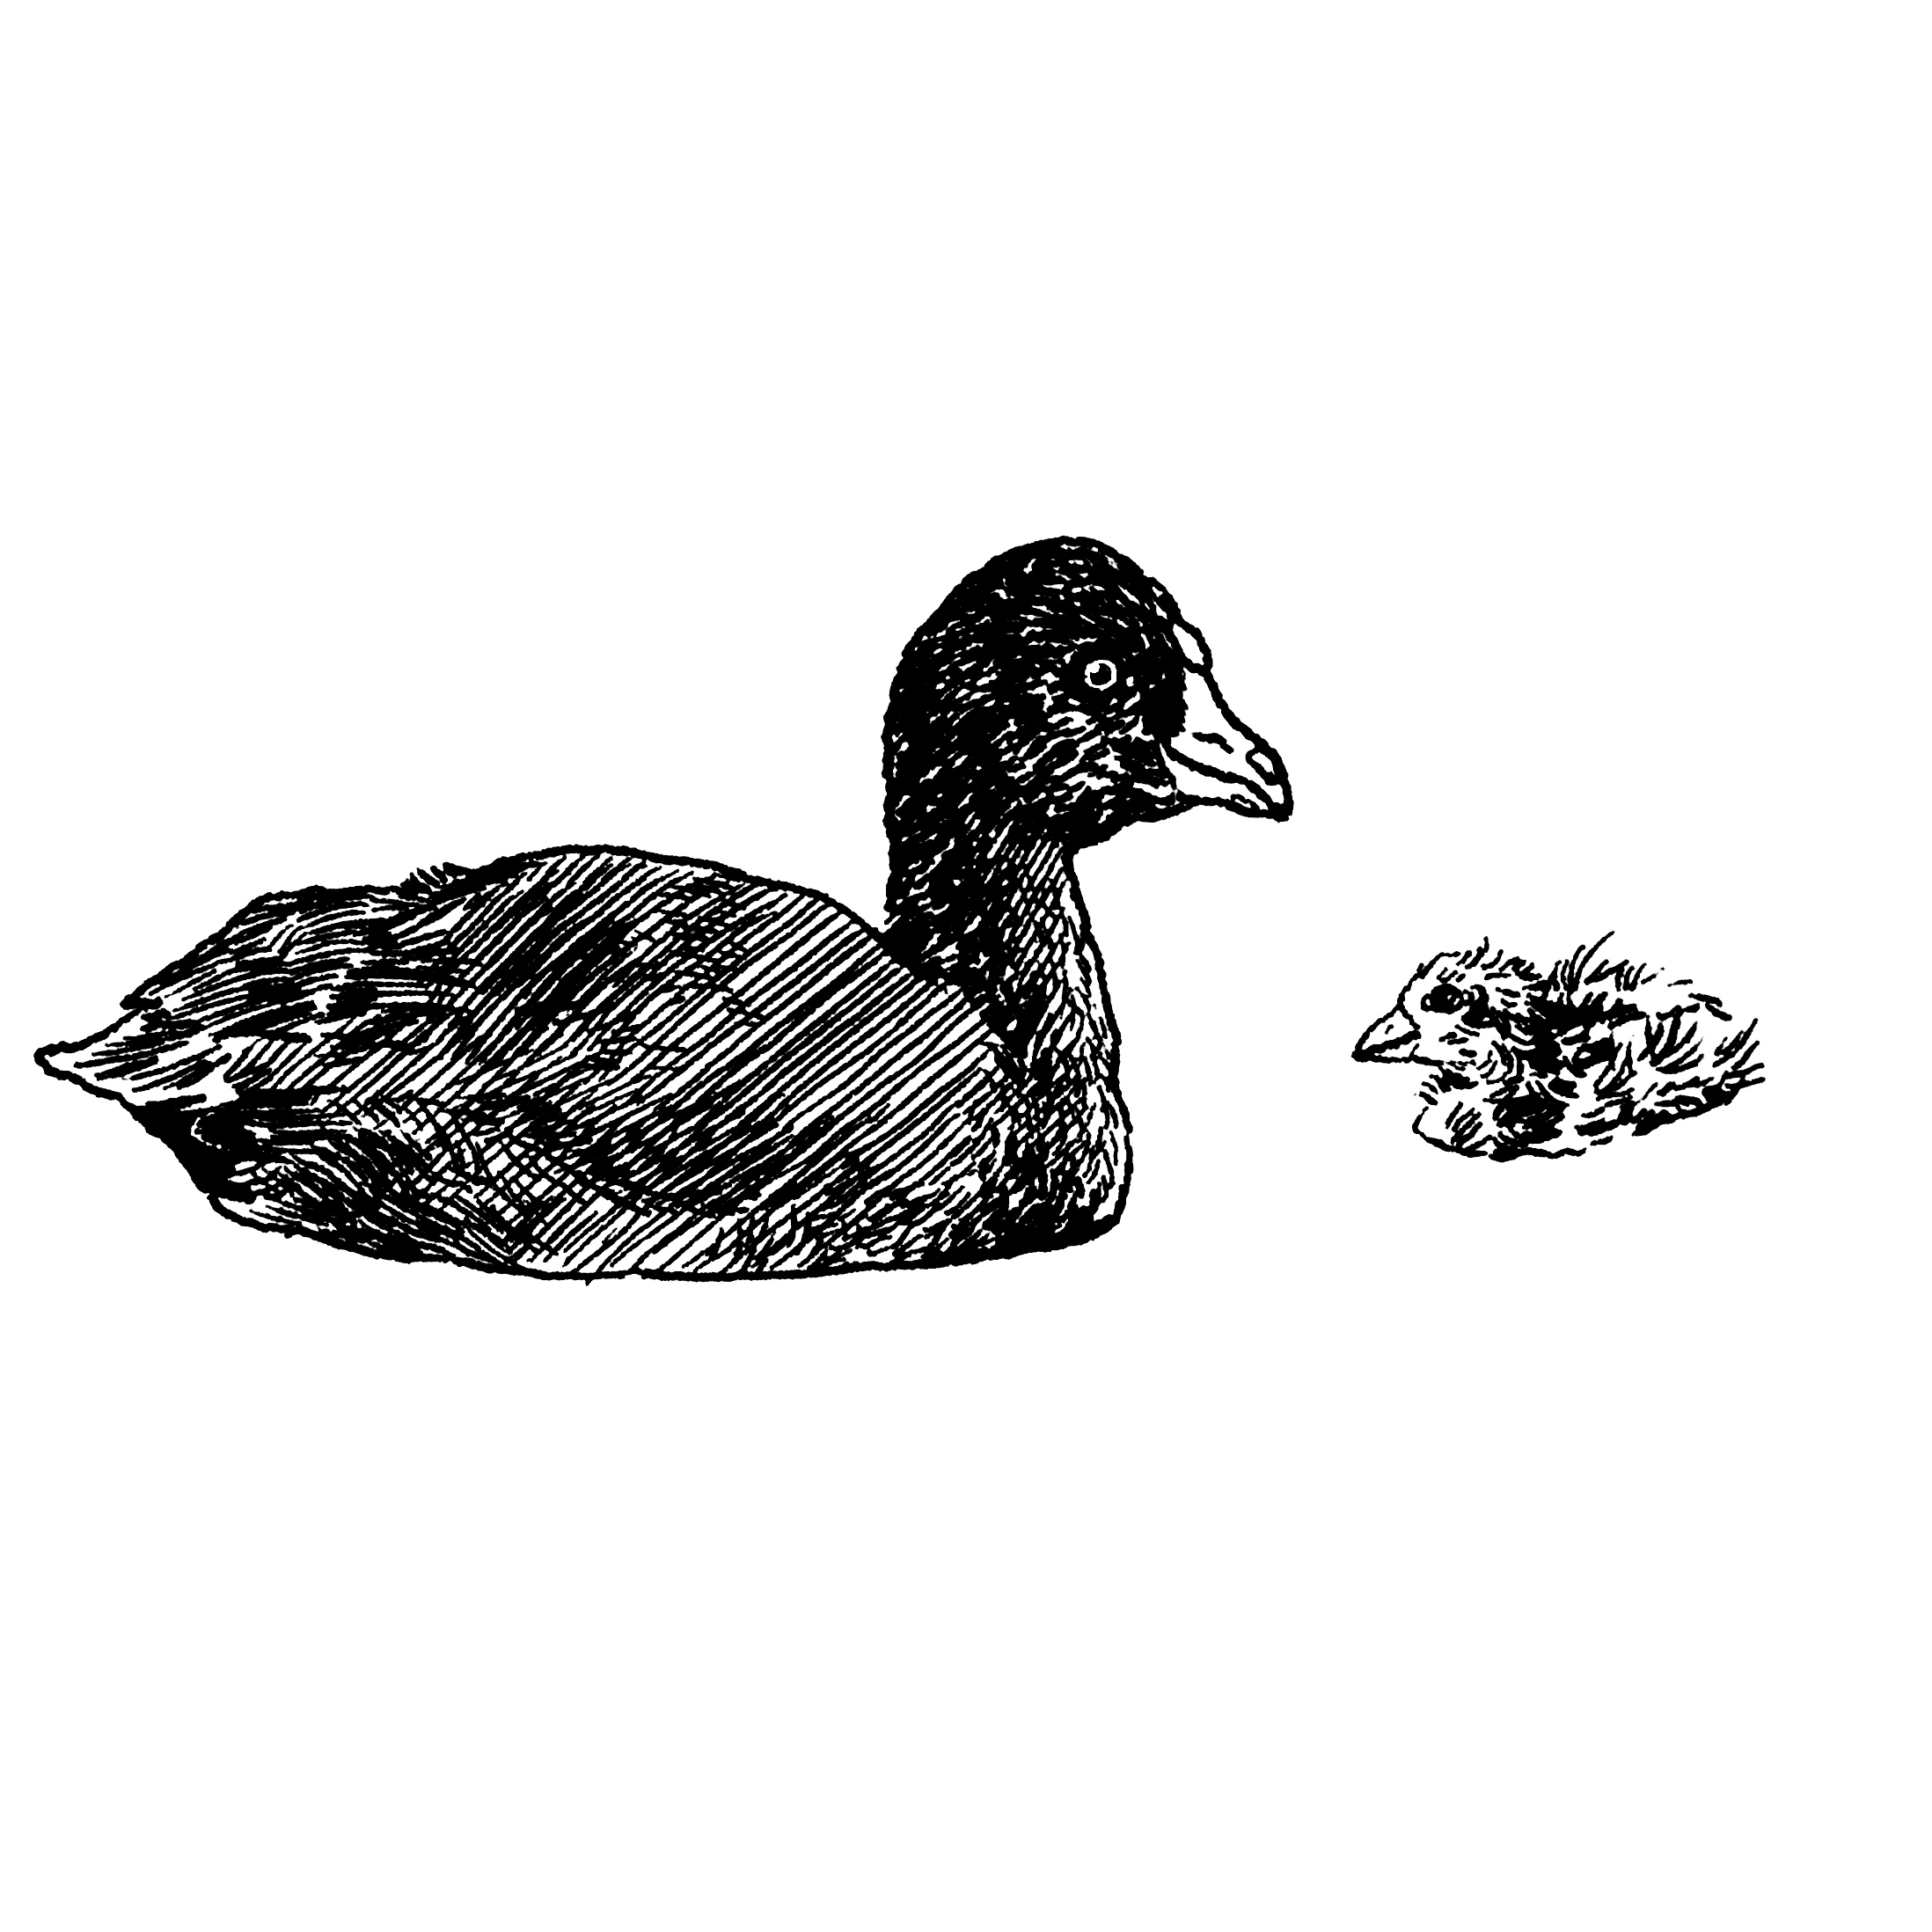 American coot clipart png transparent library The American Coot | Audubon png transparent library